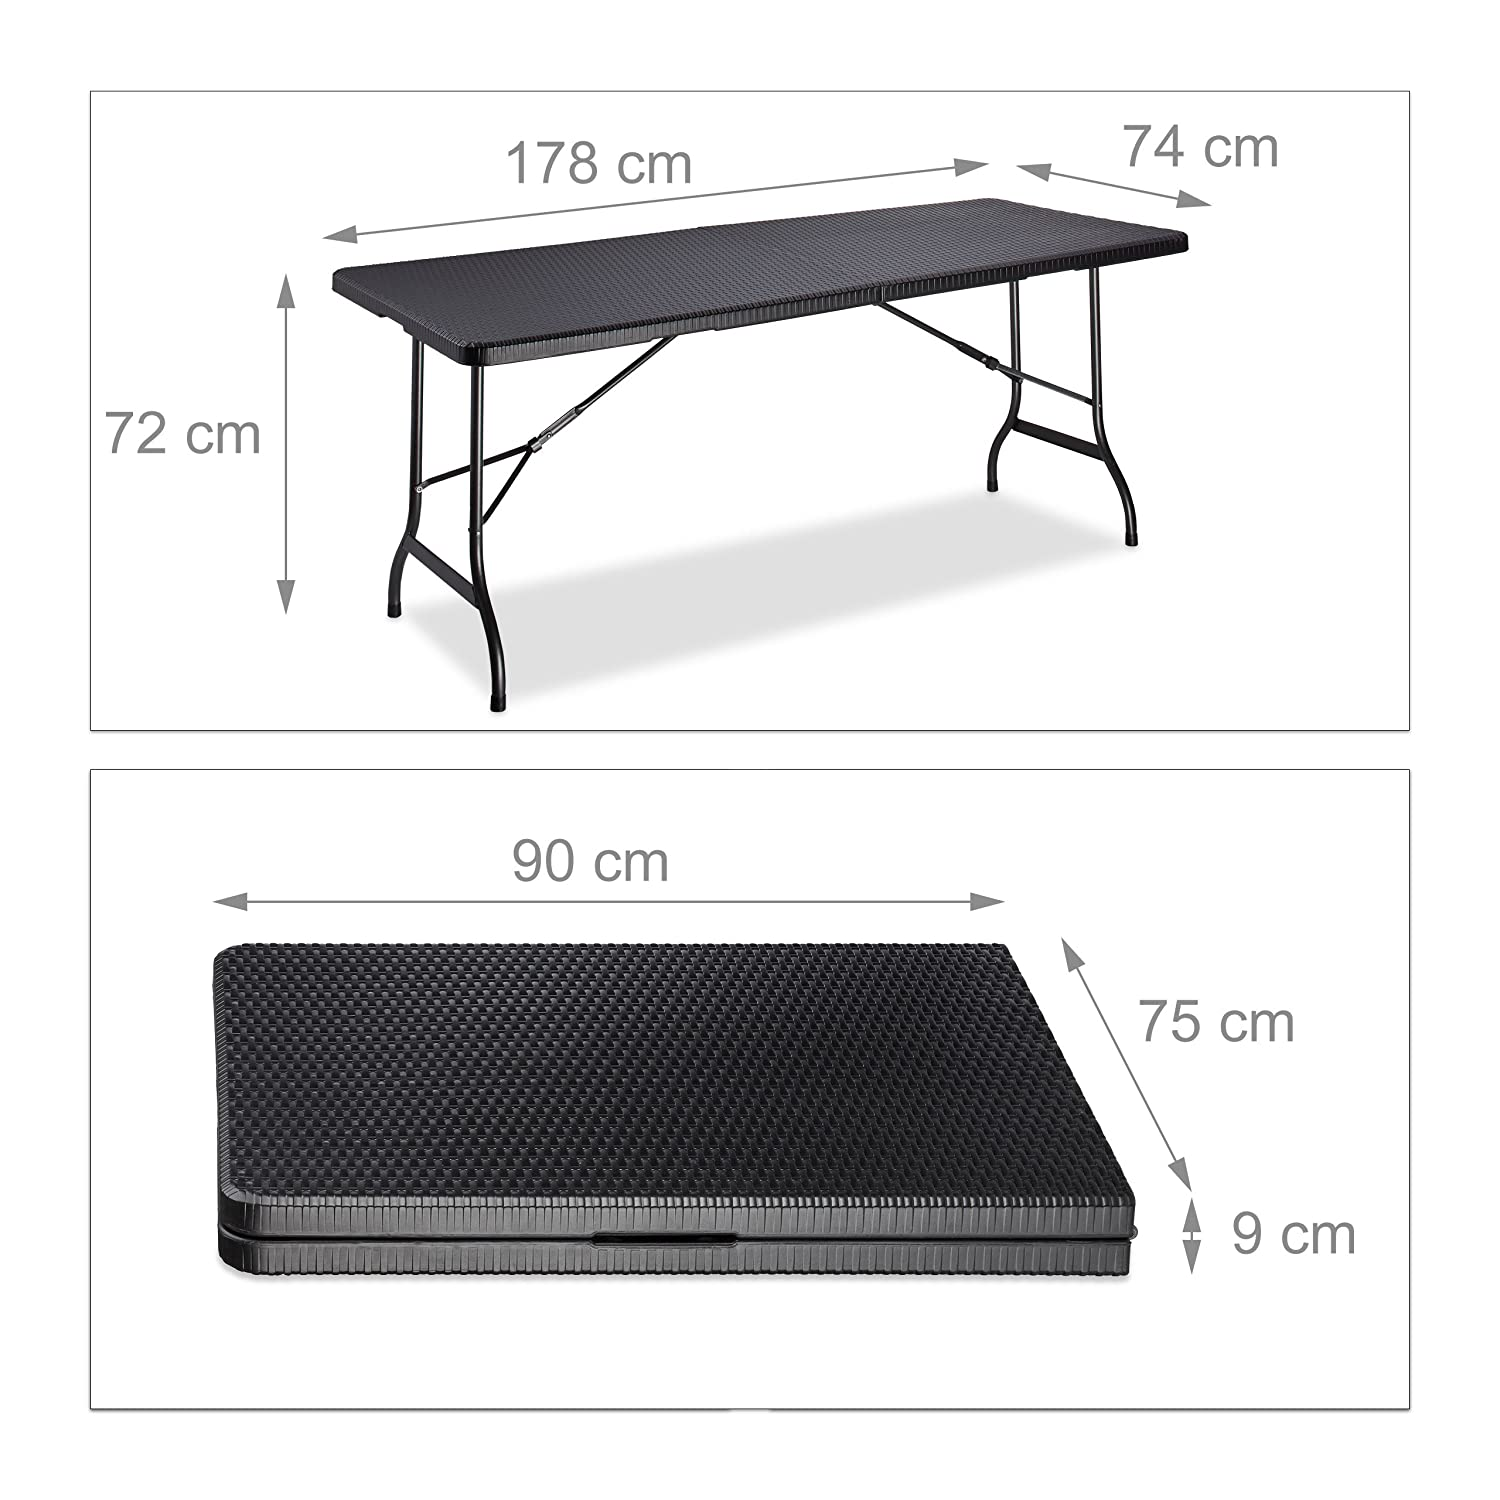 Camping Table Brown Relaxdays BASTIAN Folding Garden with Handle Large HxWxD: 72 x 178 x 74 cm 74x178x72 cm